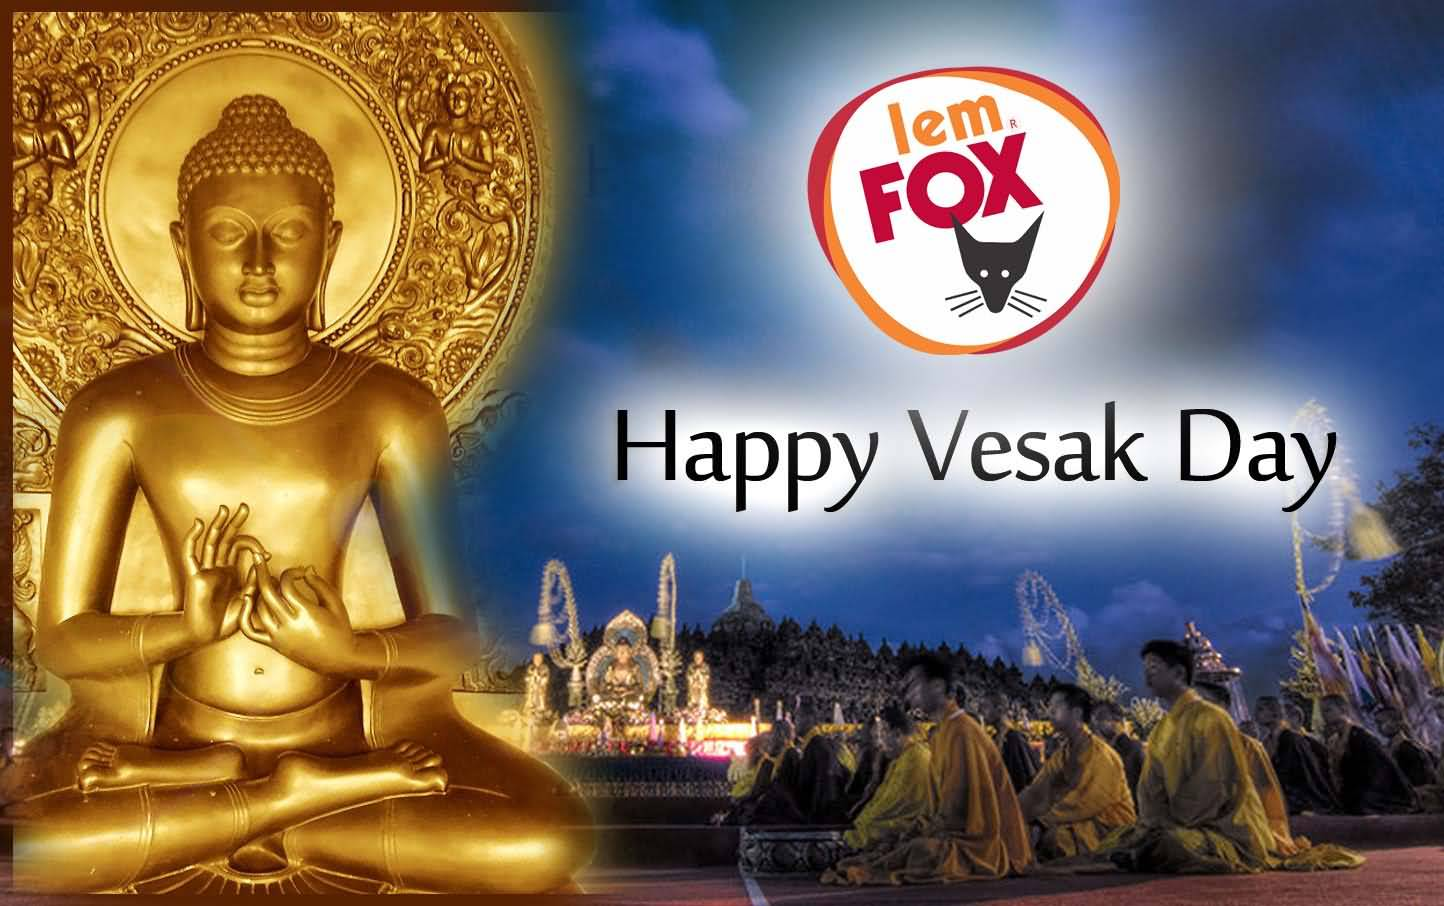 5-Happy Vesak Day Wishes